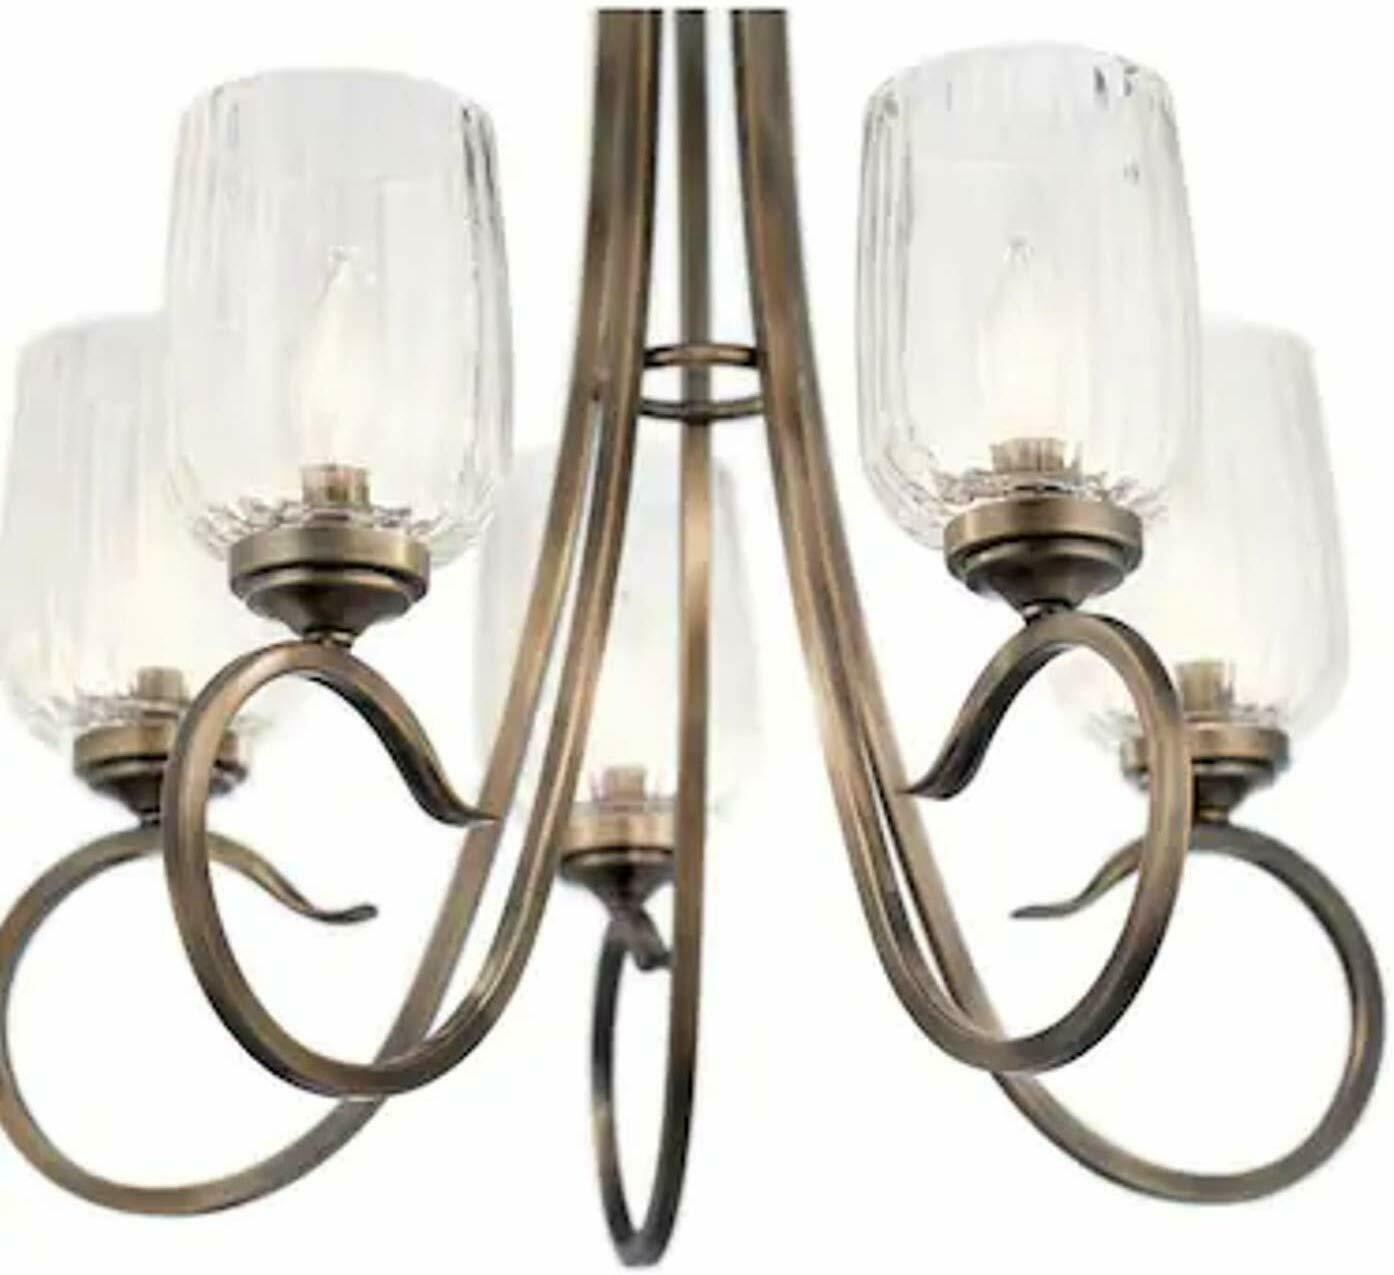 Kichler Chesterlyn 5 Light Vintage Tuscan Traditional Ribbed Shaded Chandelier - $117.81